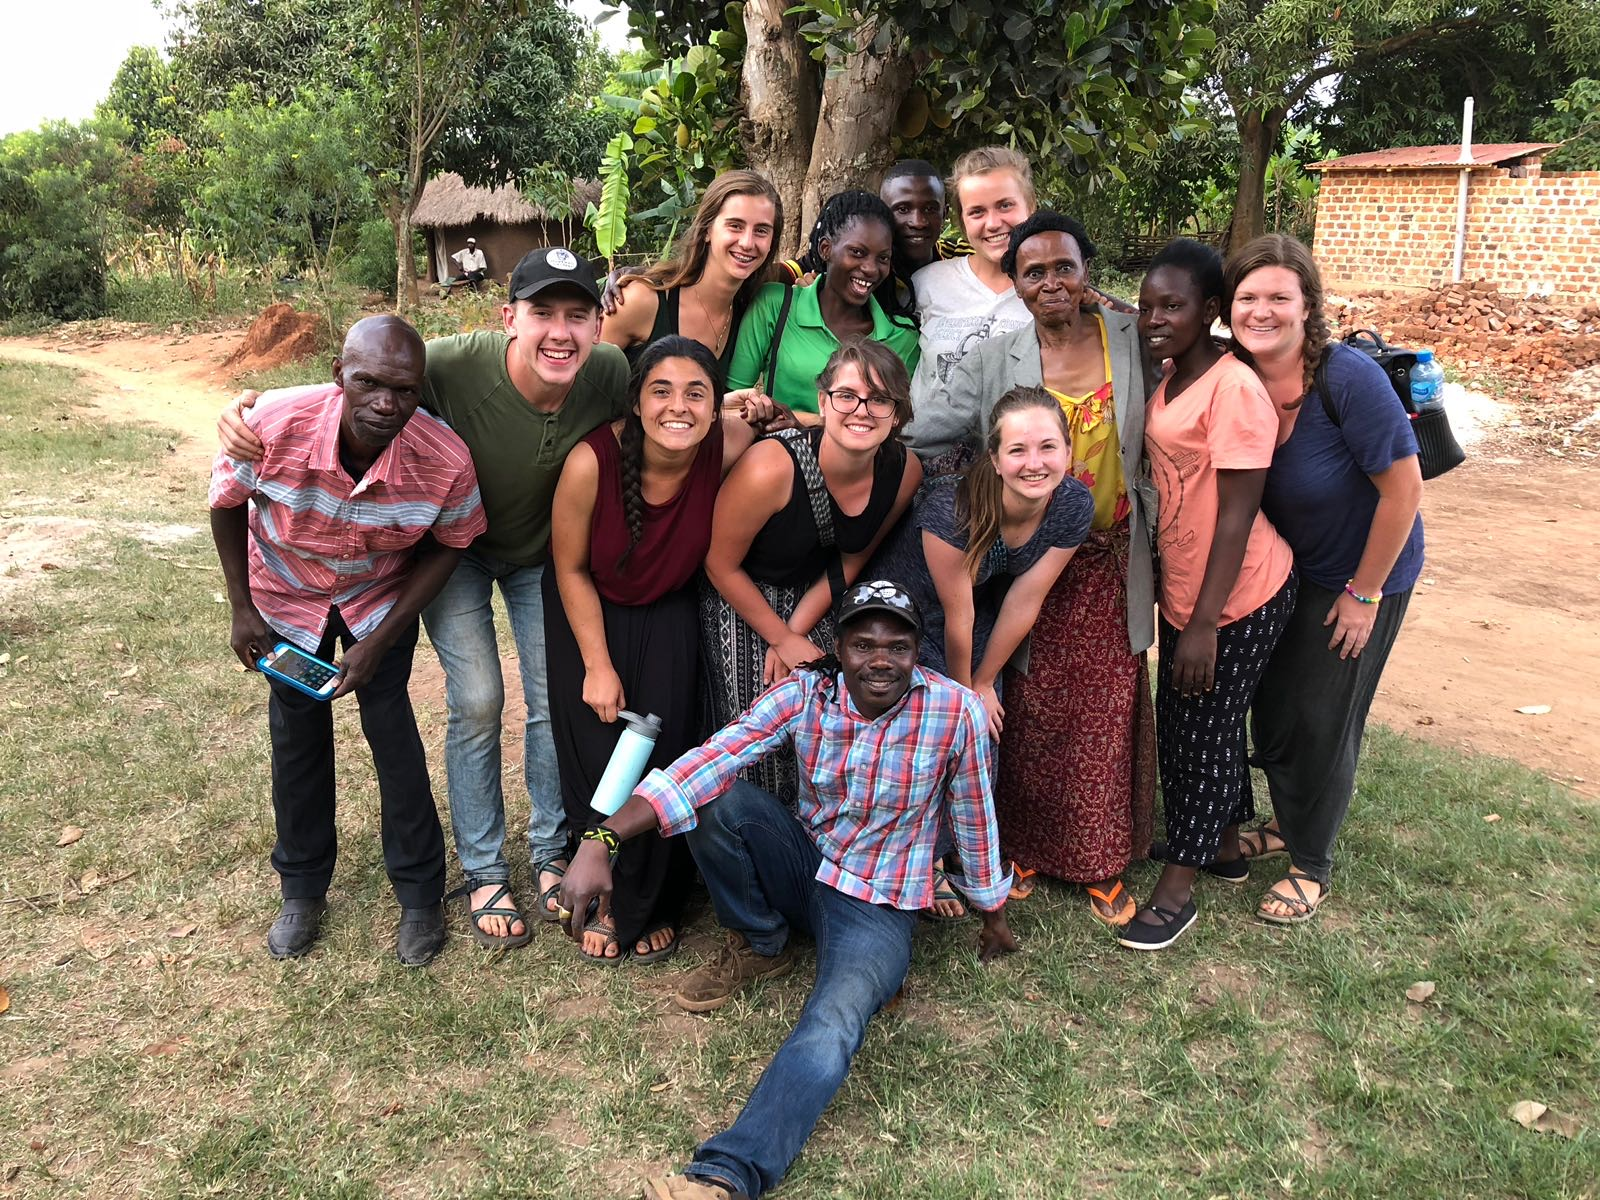 2018 Summer Interns did several home visits which allow them to sit and visit with locals, hearing about their lives and the kinds of challenges that God has carried them through. This visit, spent with Madame Jane (third from right), was especially wonderful as they learned about her decades of experience as a teacher at St. Johns school, where the interns volunteered throughout their trip.